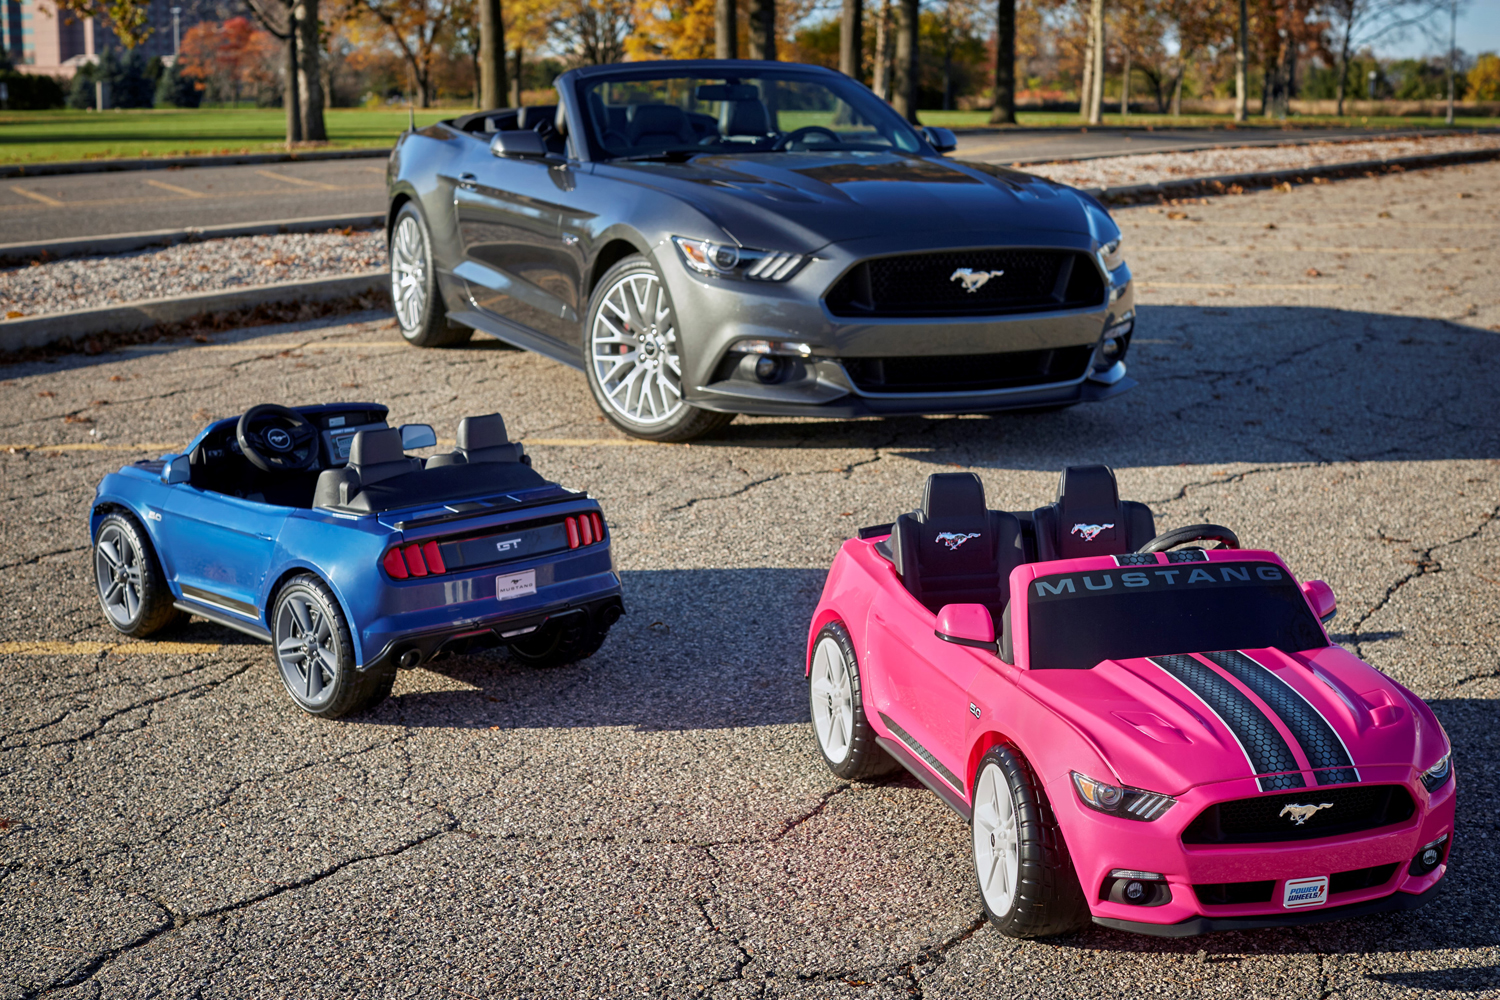 Ford Mustang GT Power Wheels features traction control, stability control and sound system